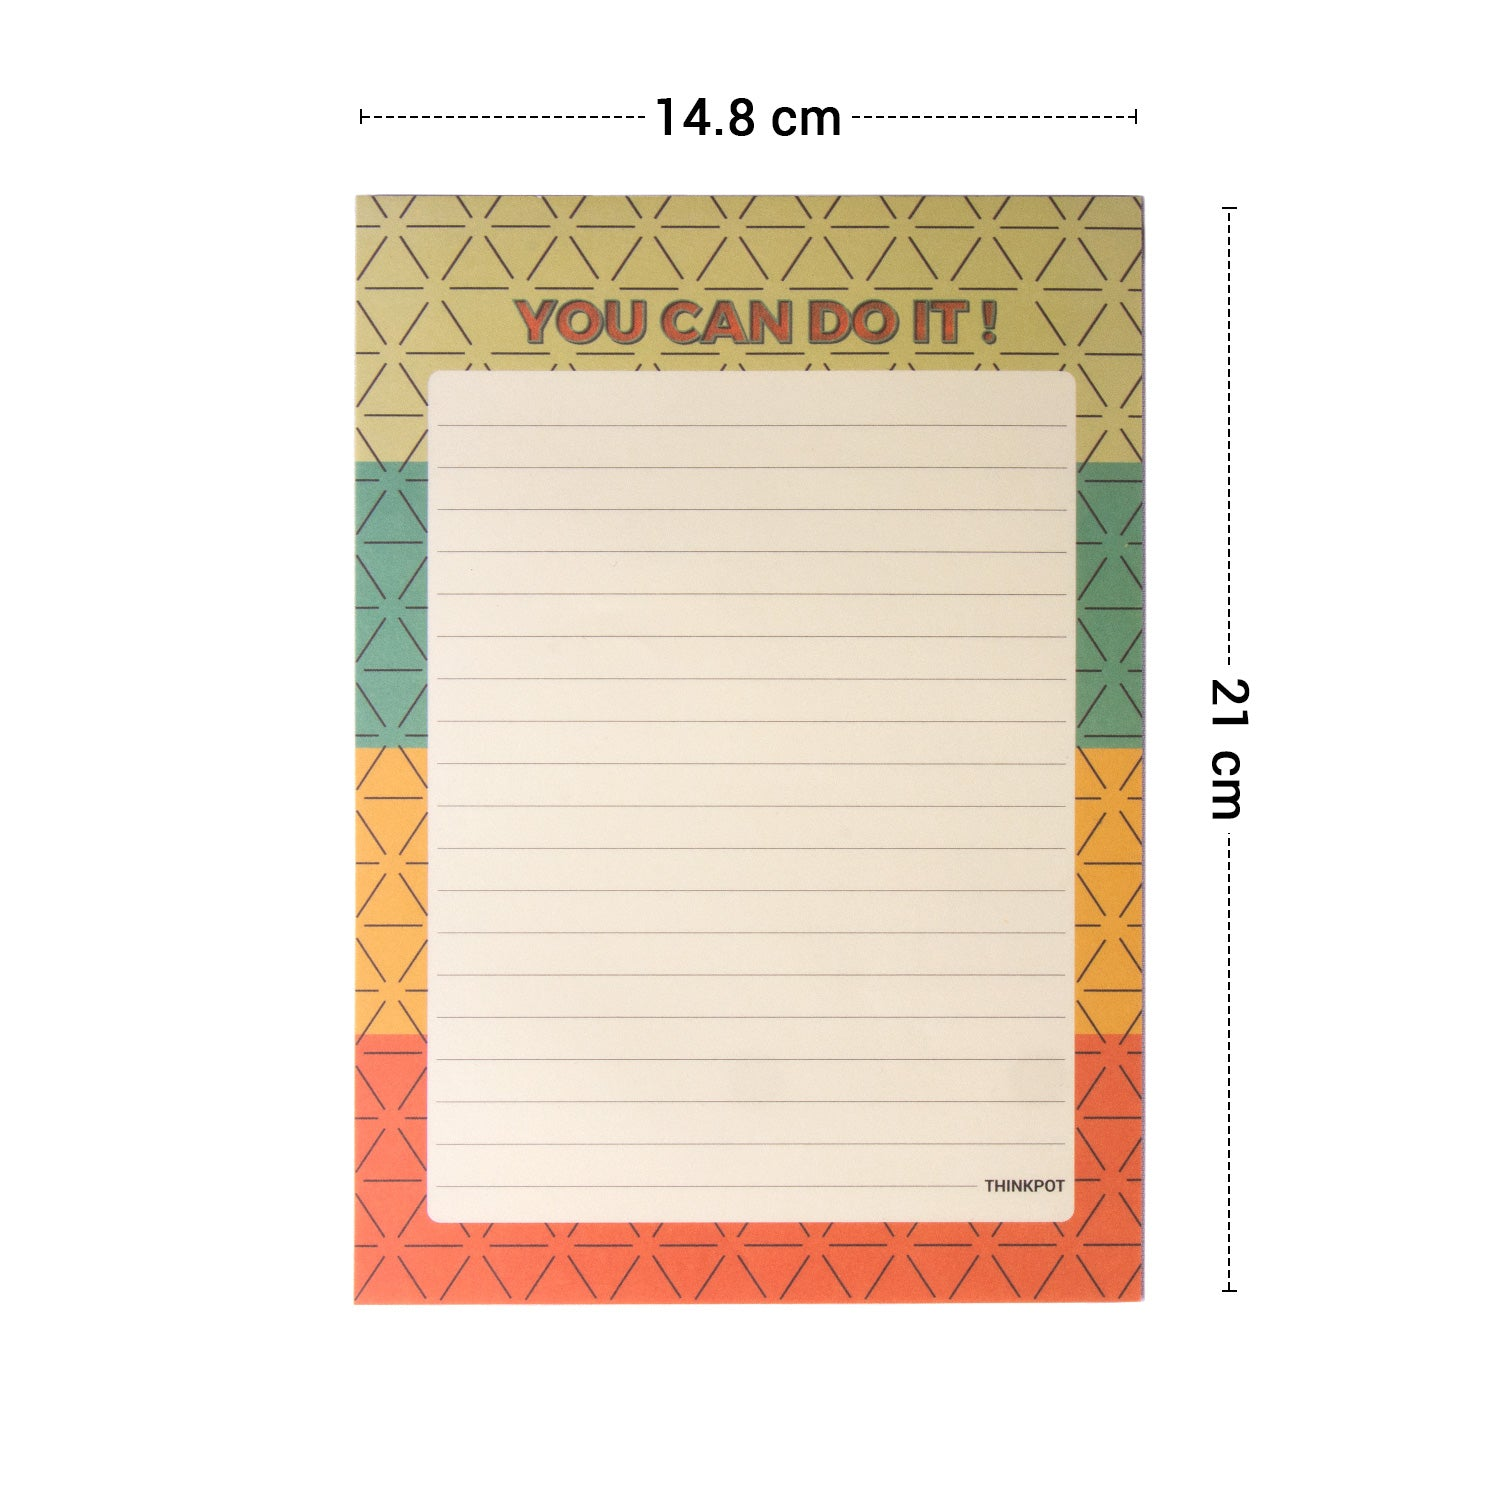 You can do it Memo Pad